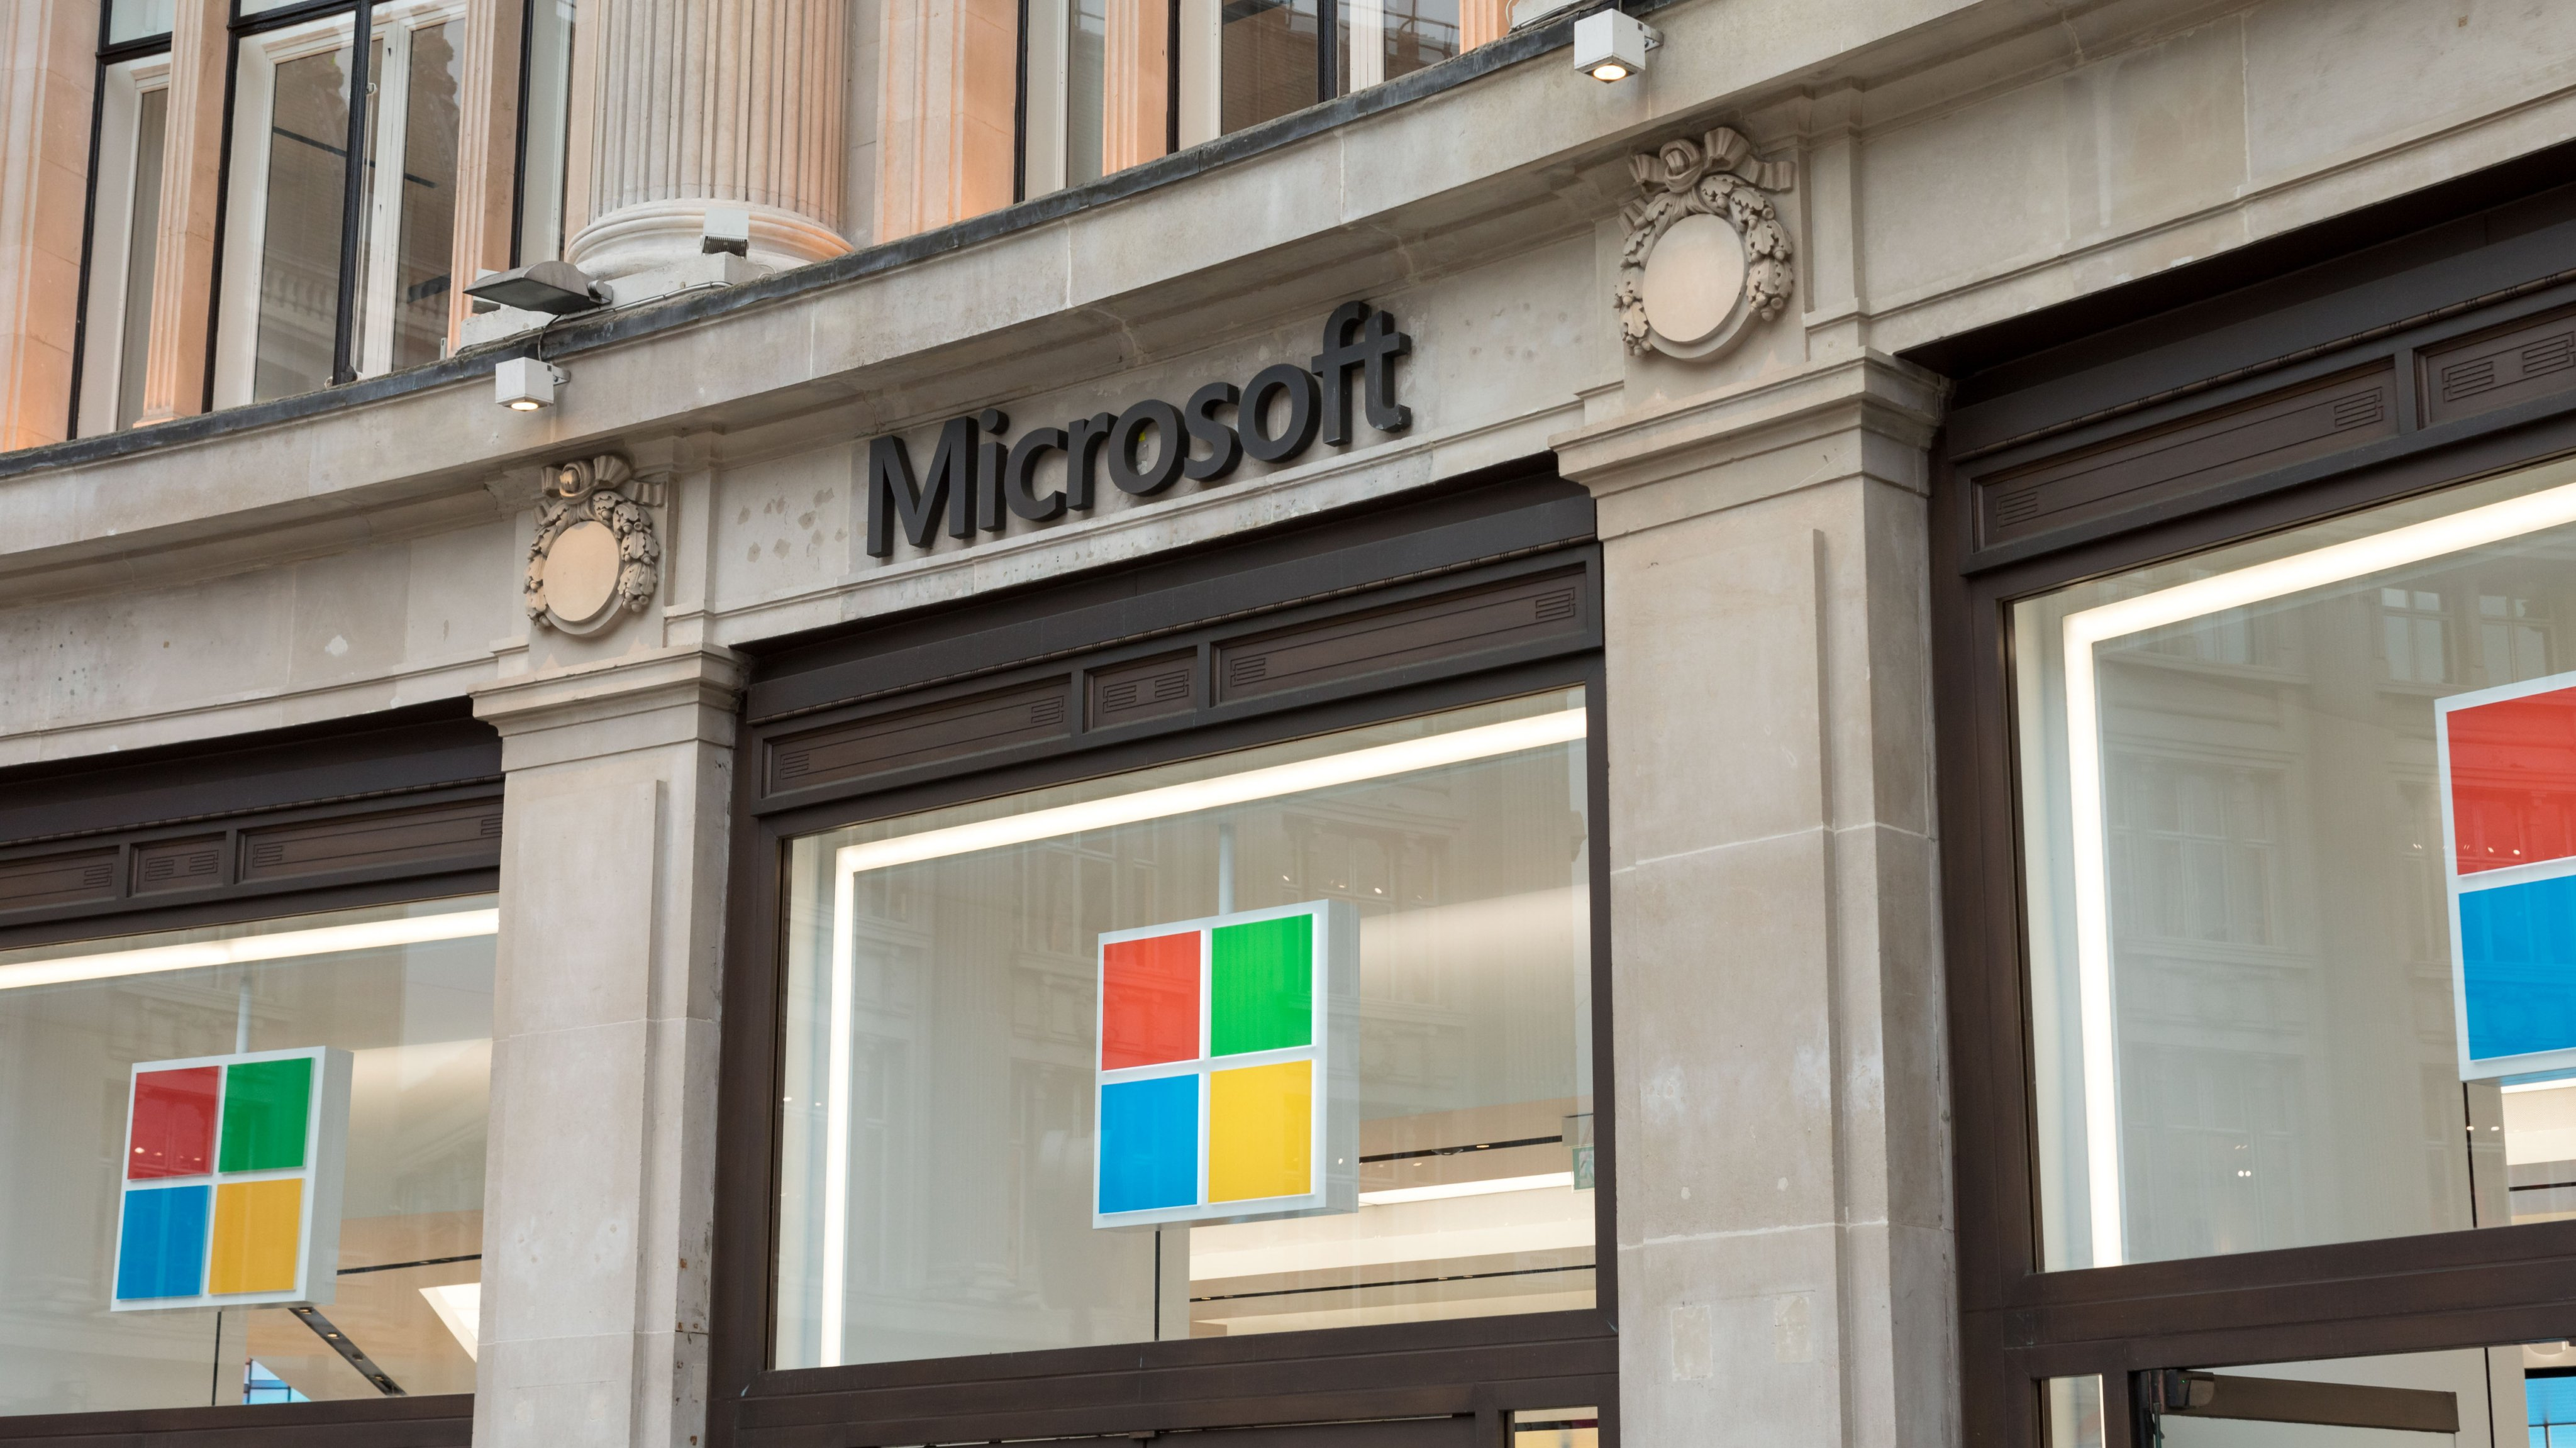 Microsoft logo is seen at one of their stores on Oxford